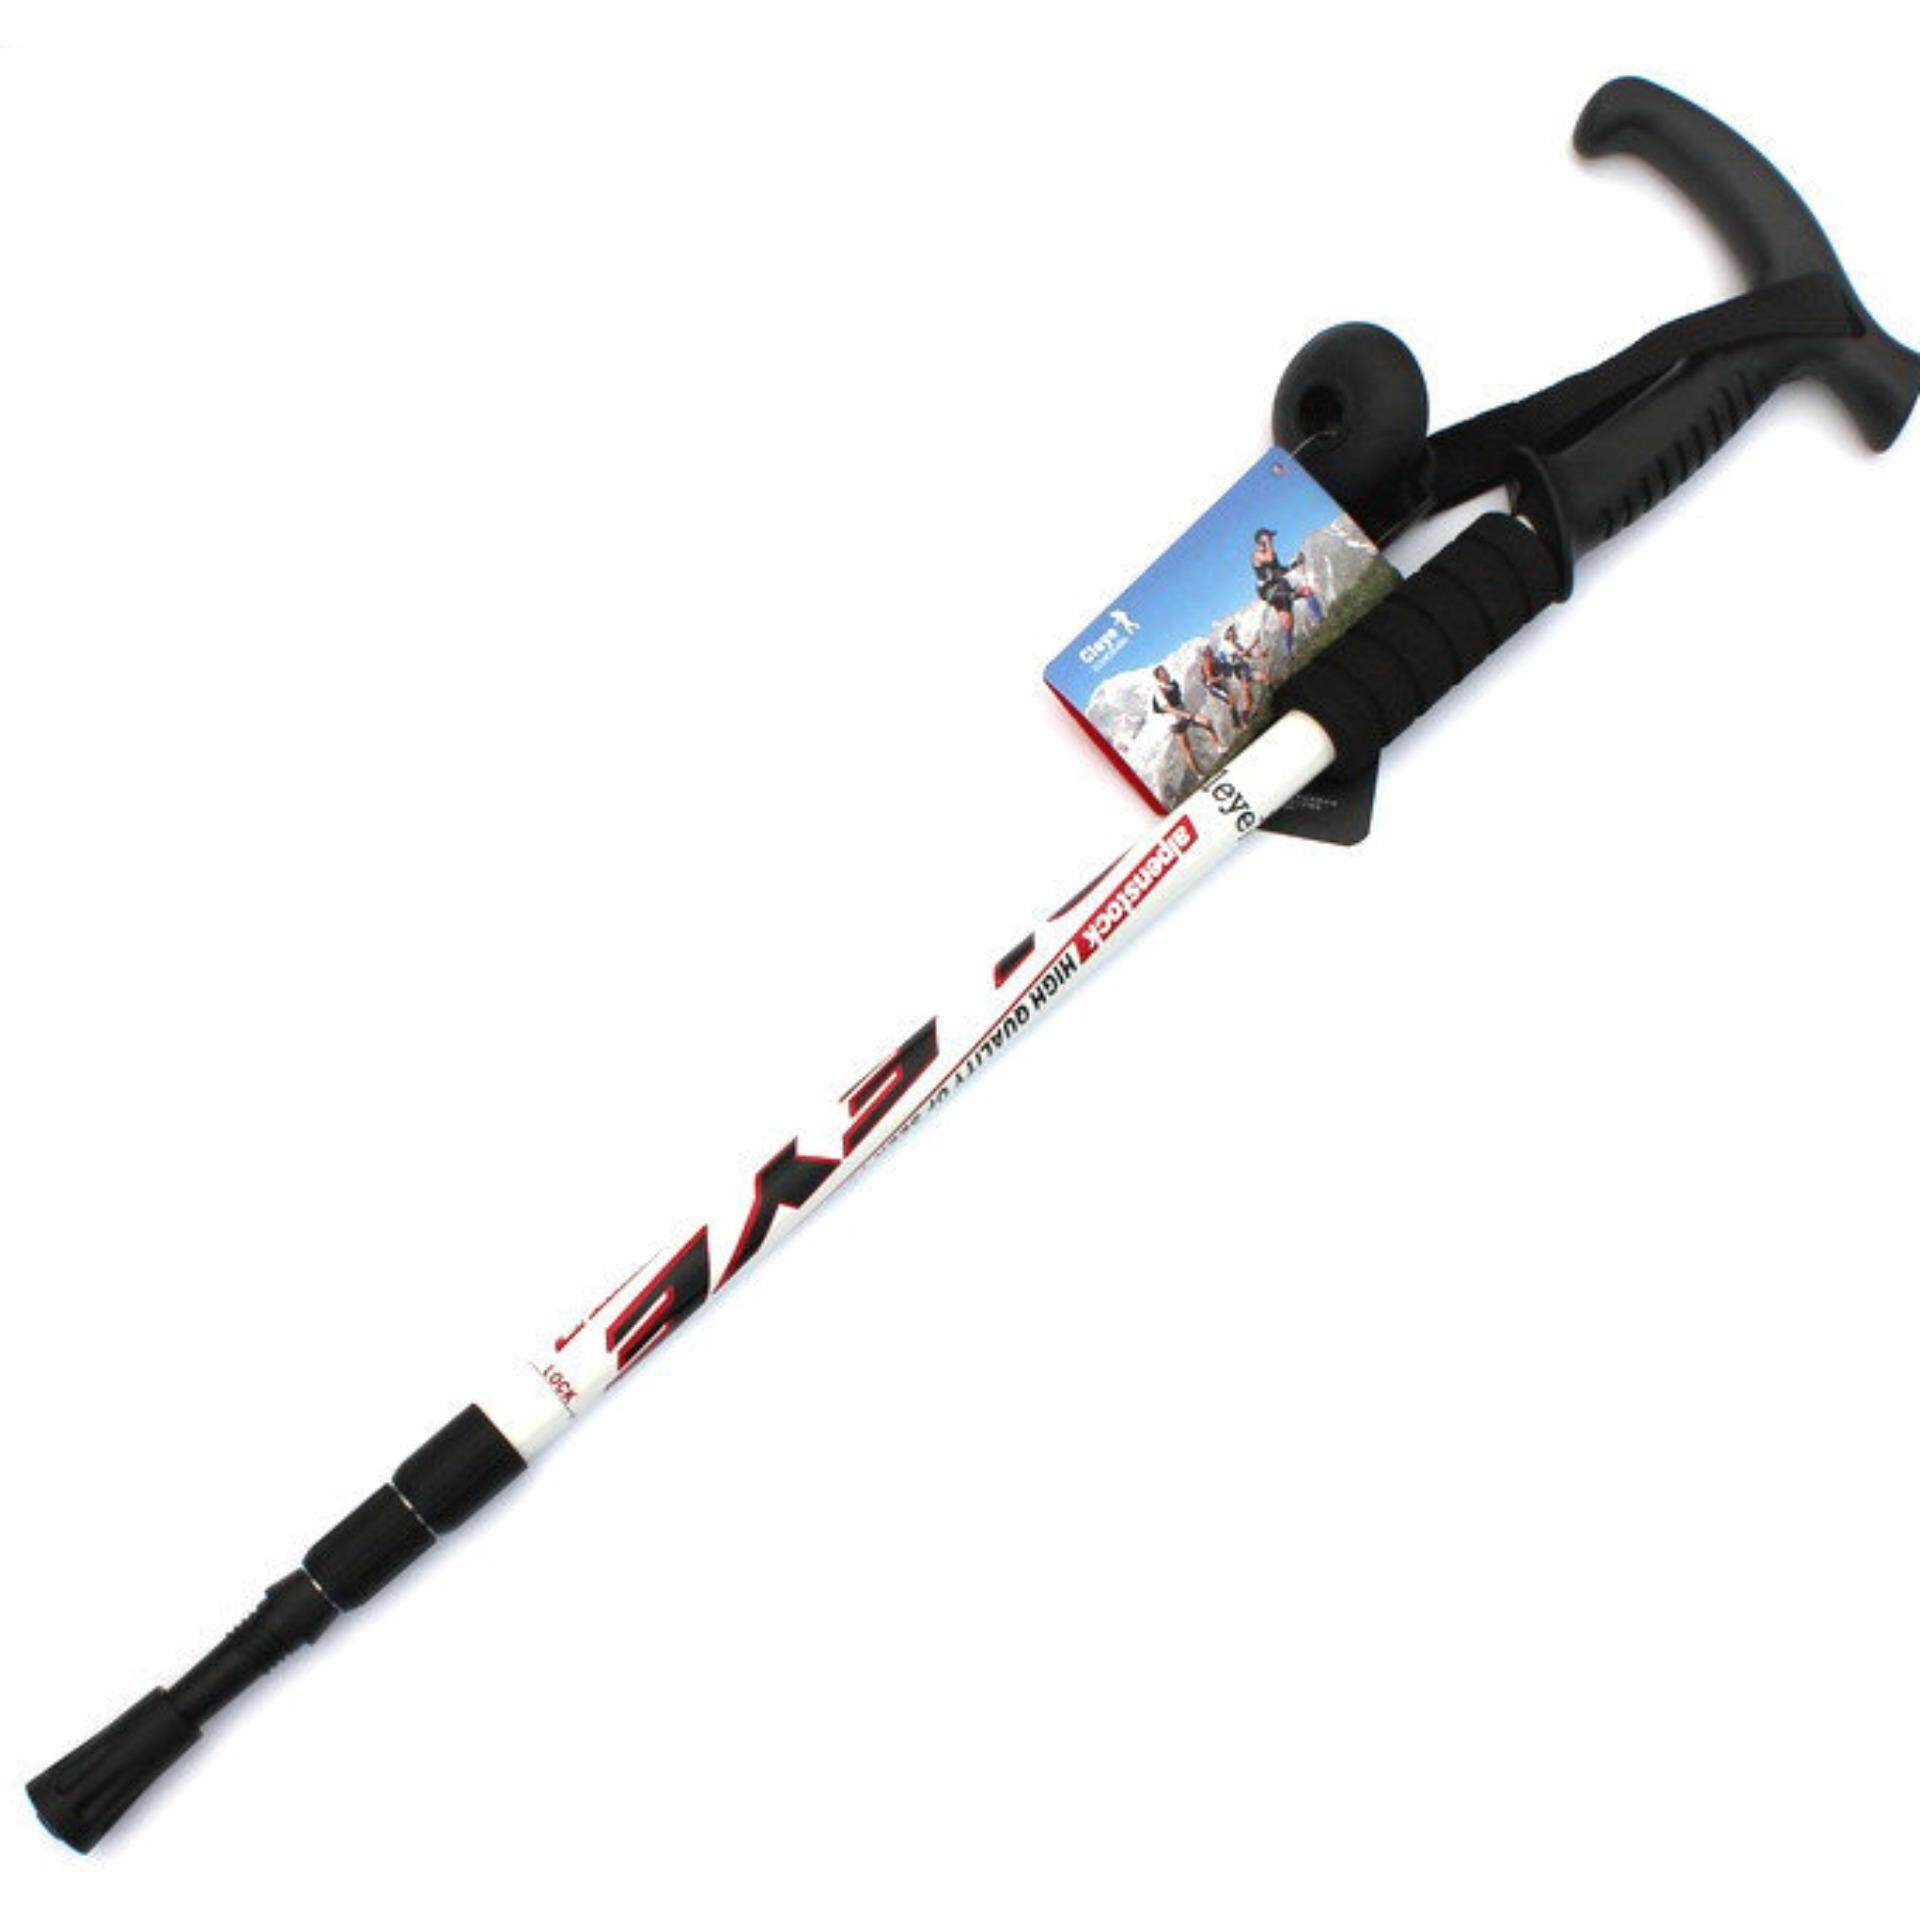 [ READY STOCK ]  CLEYE Adjustable Walking Hiking Stick Trekking Trail Poles Canes - White